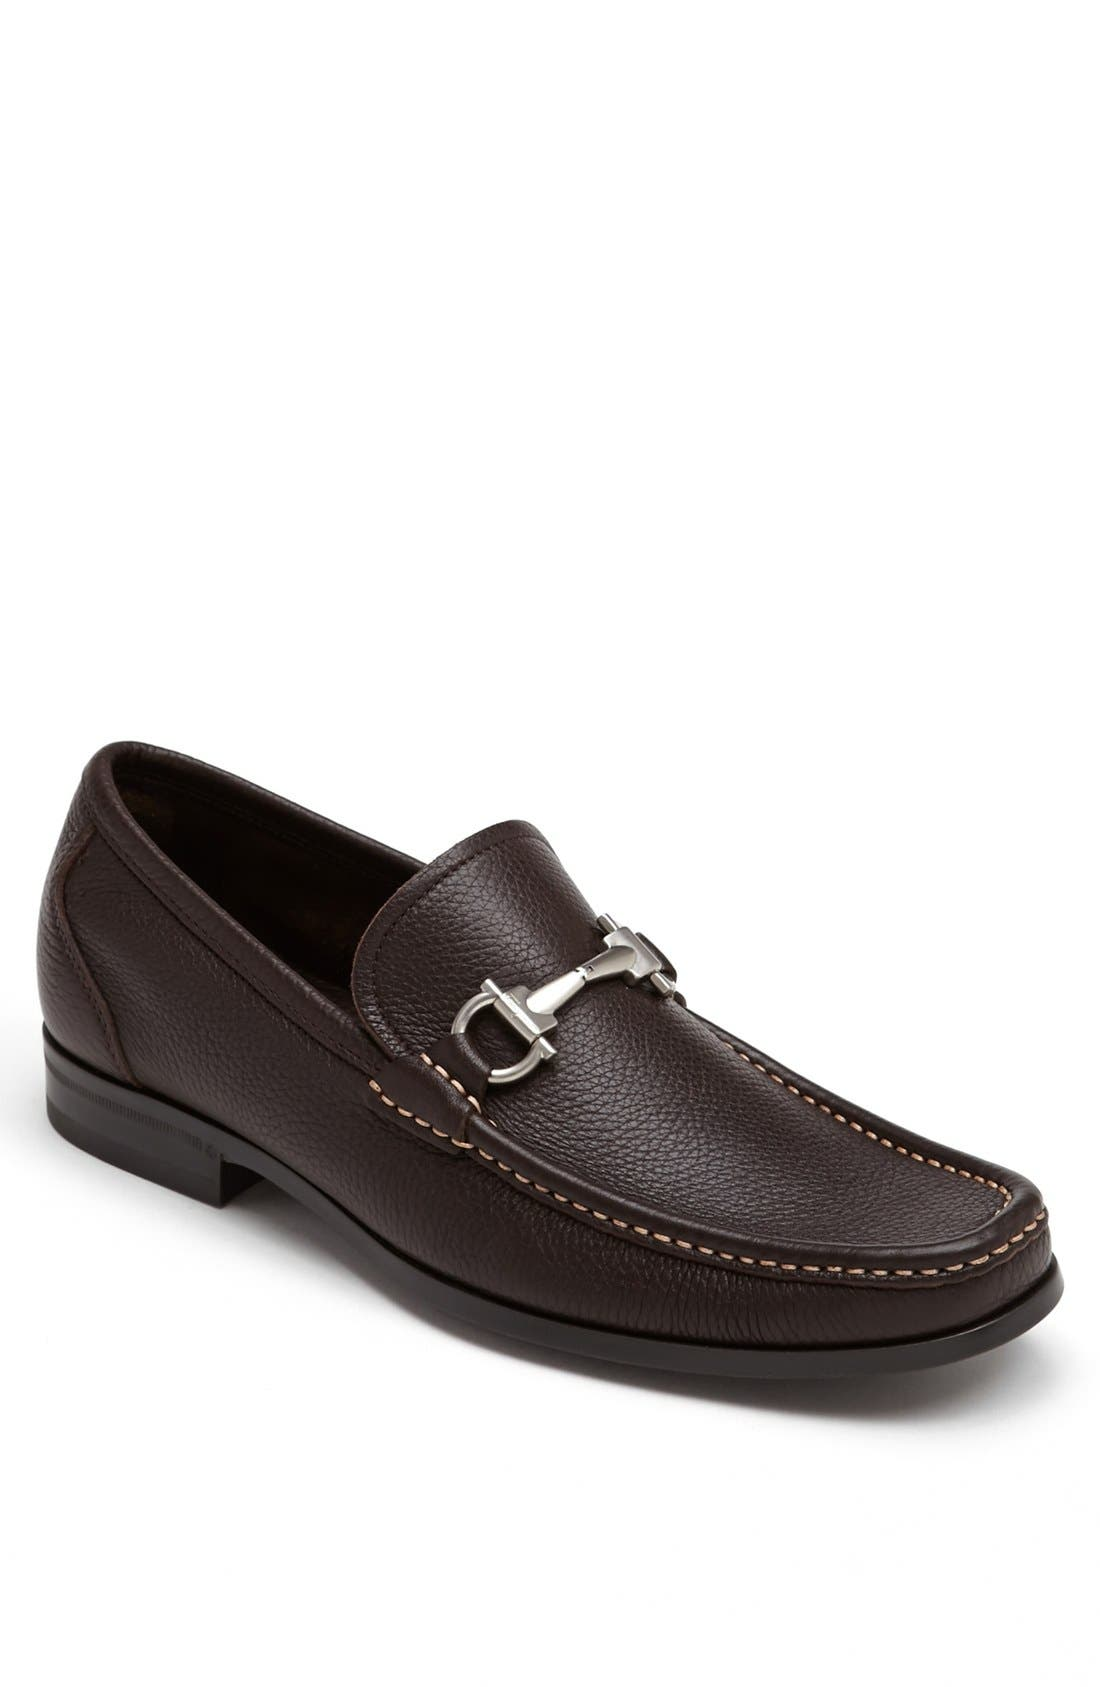 Alternate Image 1 Selected - Salvatore Ferragamo 'Magnifico' Loafer